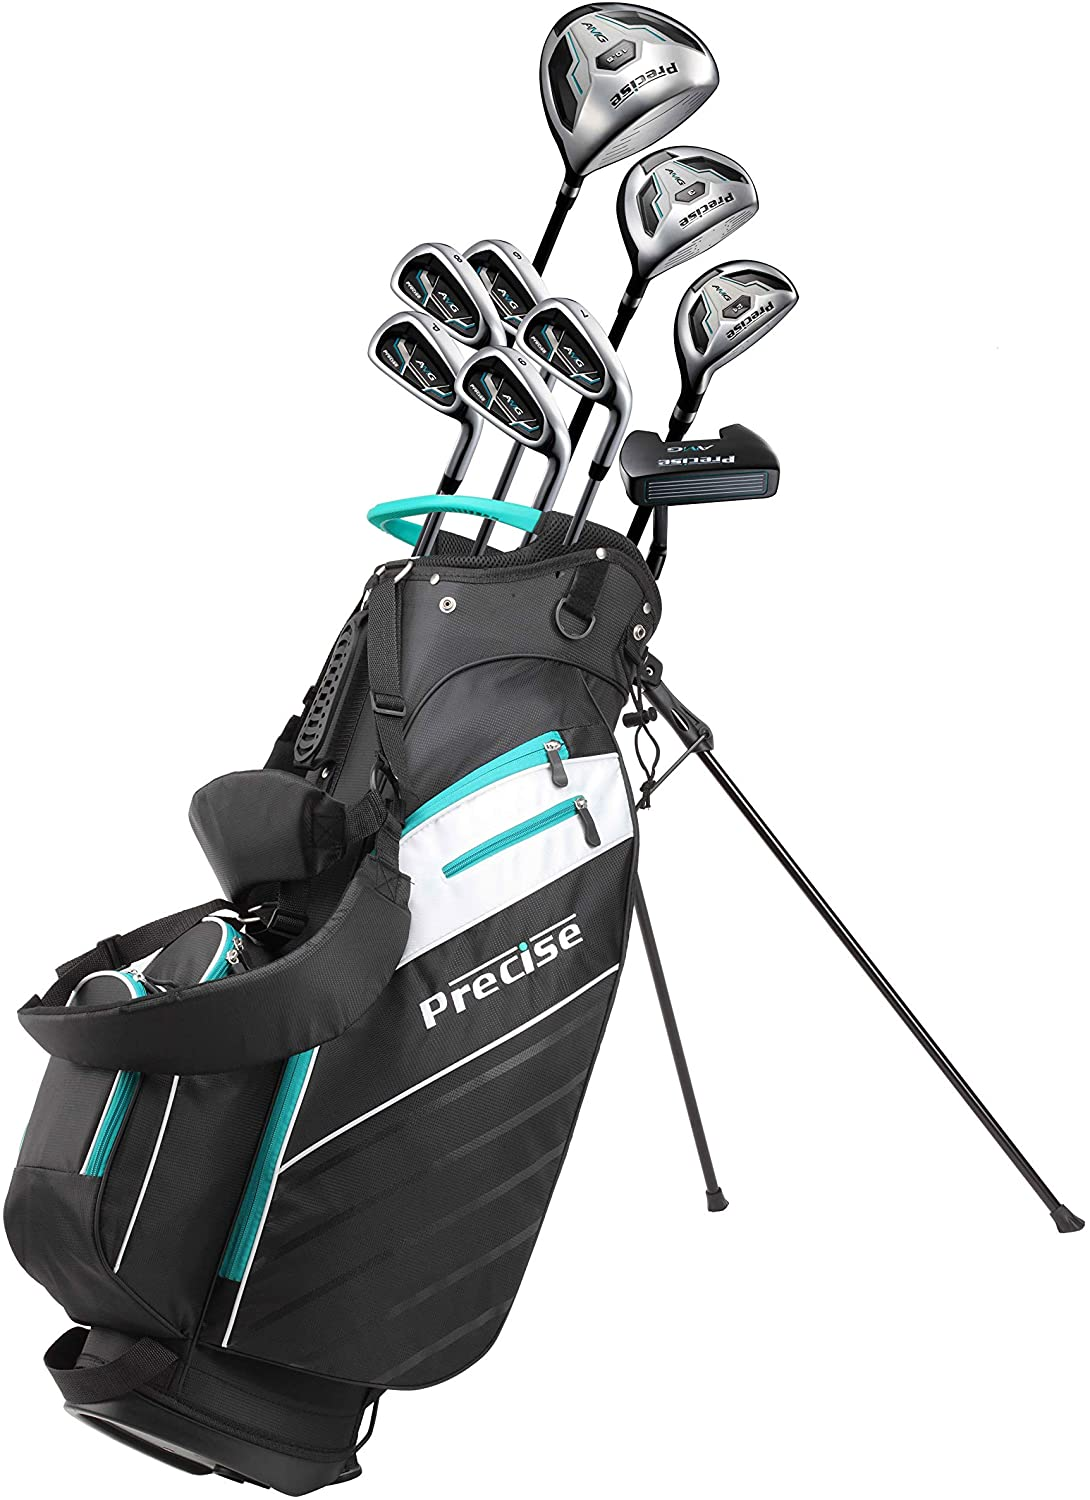 Precise AMG Men's Complete Golf Clubs Package Set Includes Titanium Driver, S.S. Fairway, S.S. Hybrid, S.S. 6-PW Irons, Putter, Bag, 3 H/C's Right Hand - Choose Size!